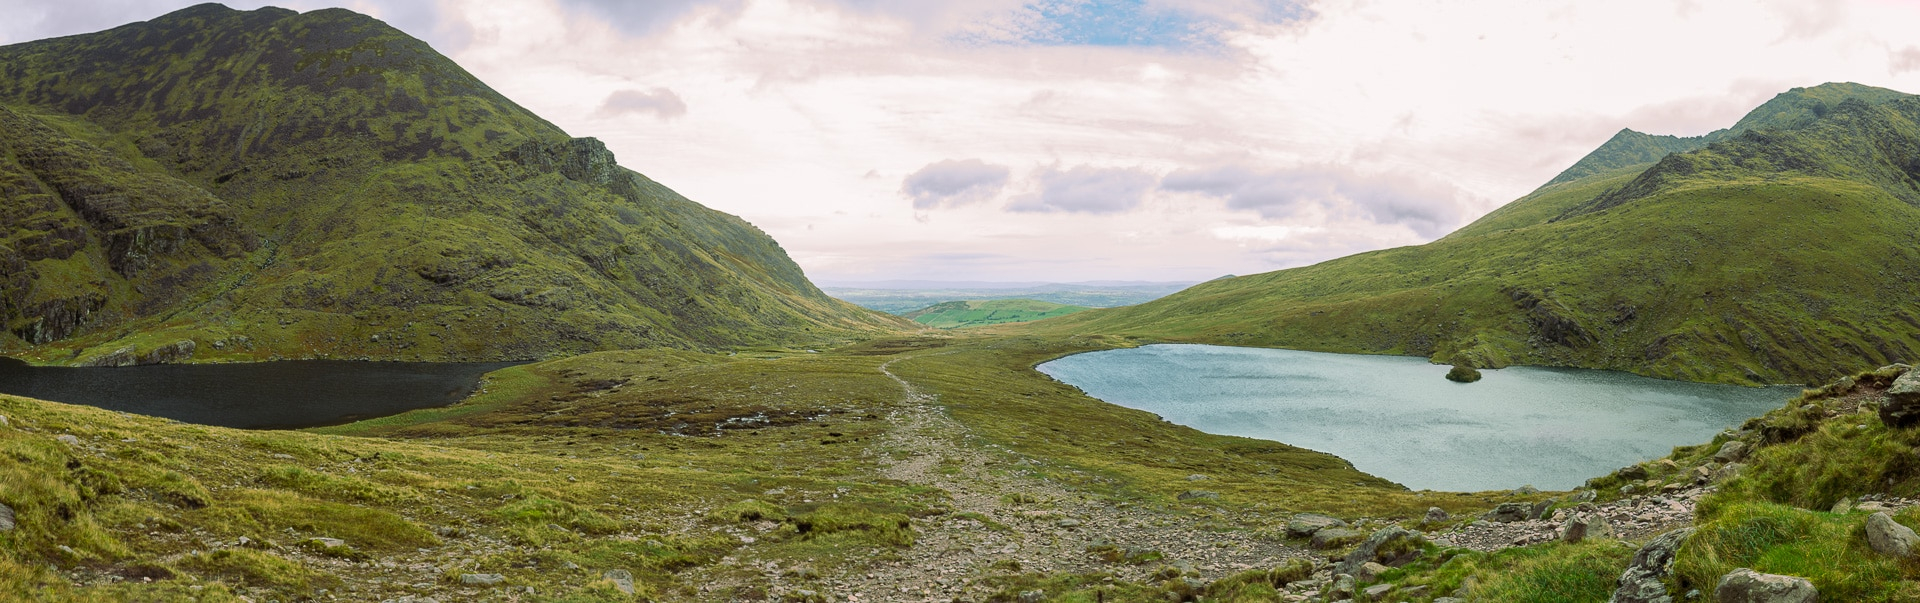 panoramic image of the lakes Gouragh and Callee